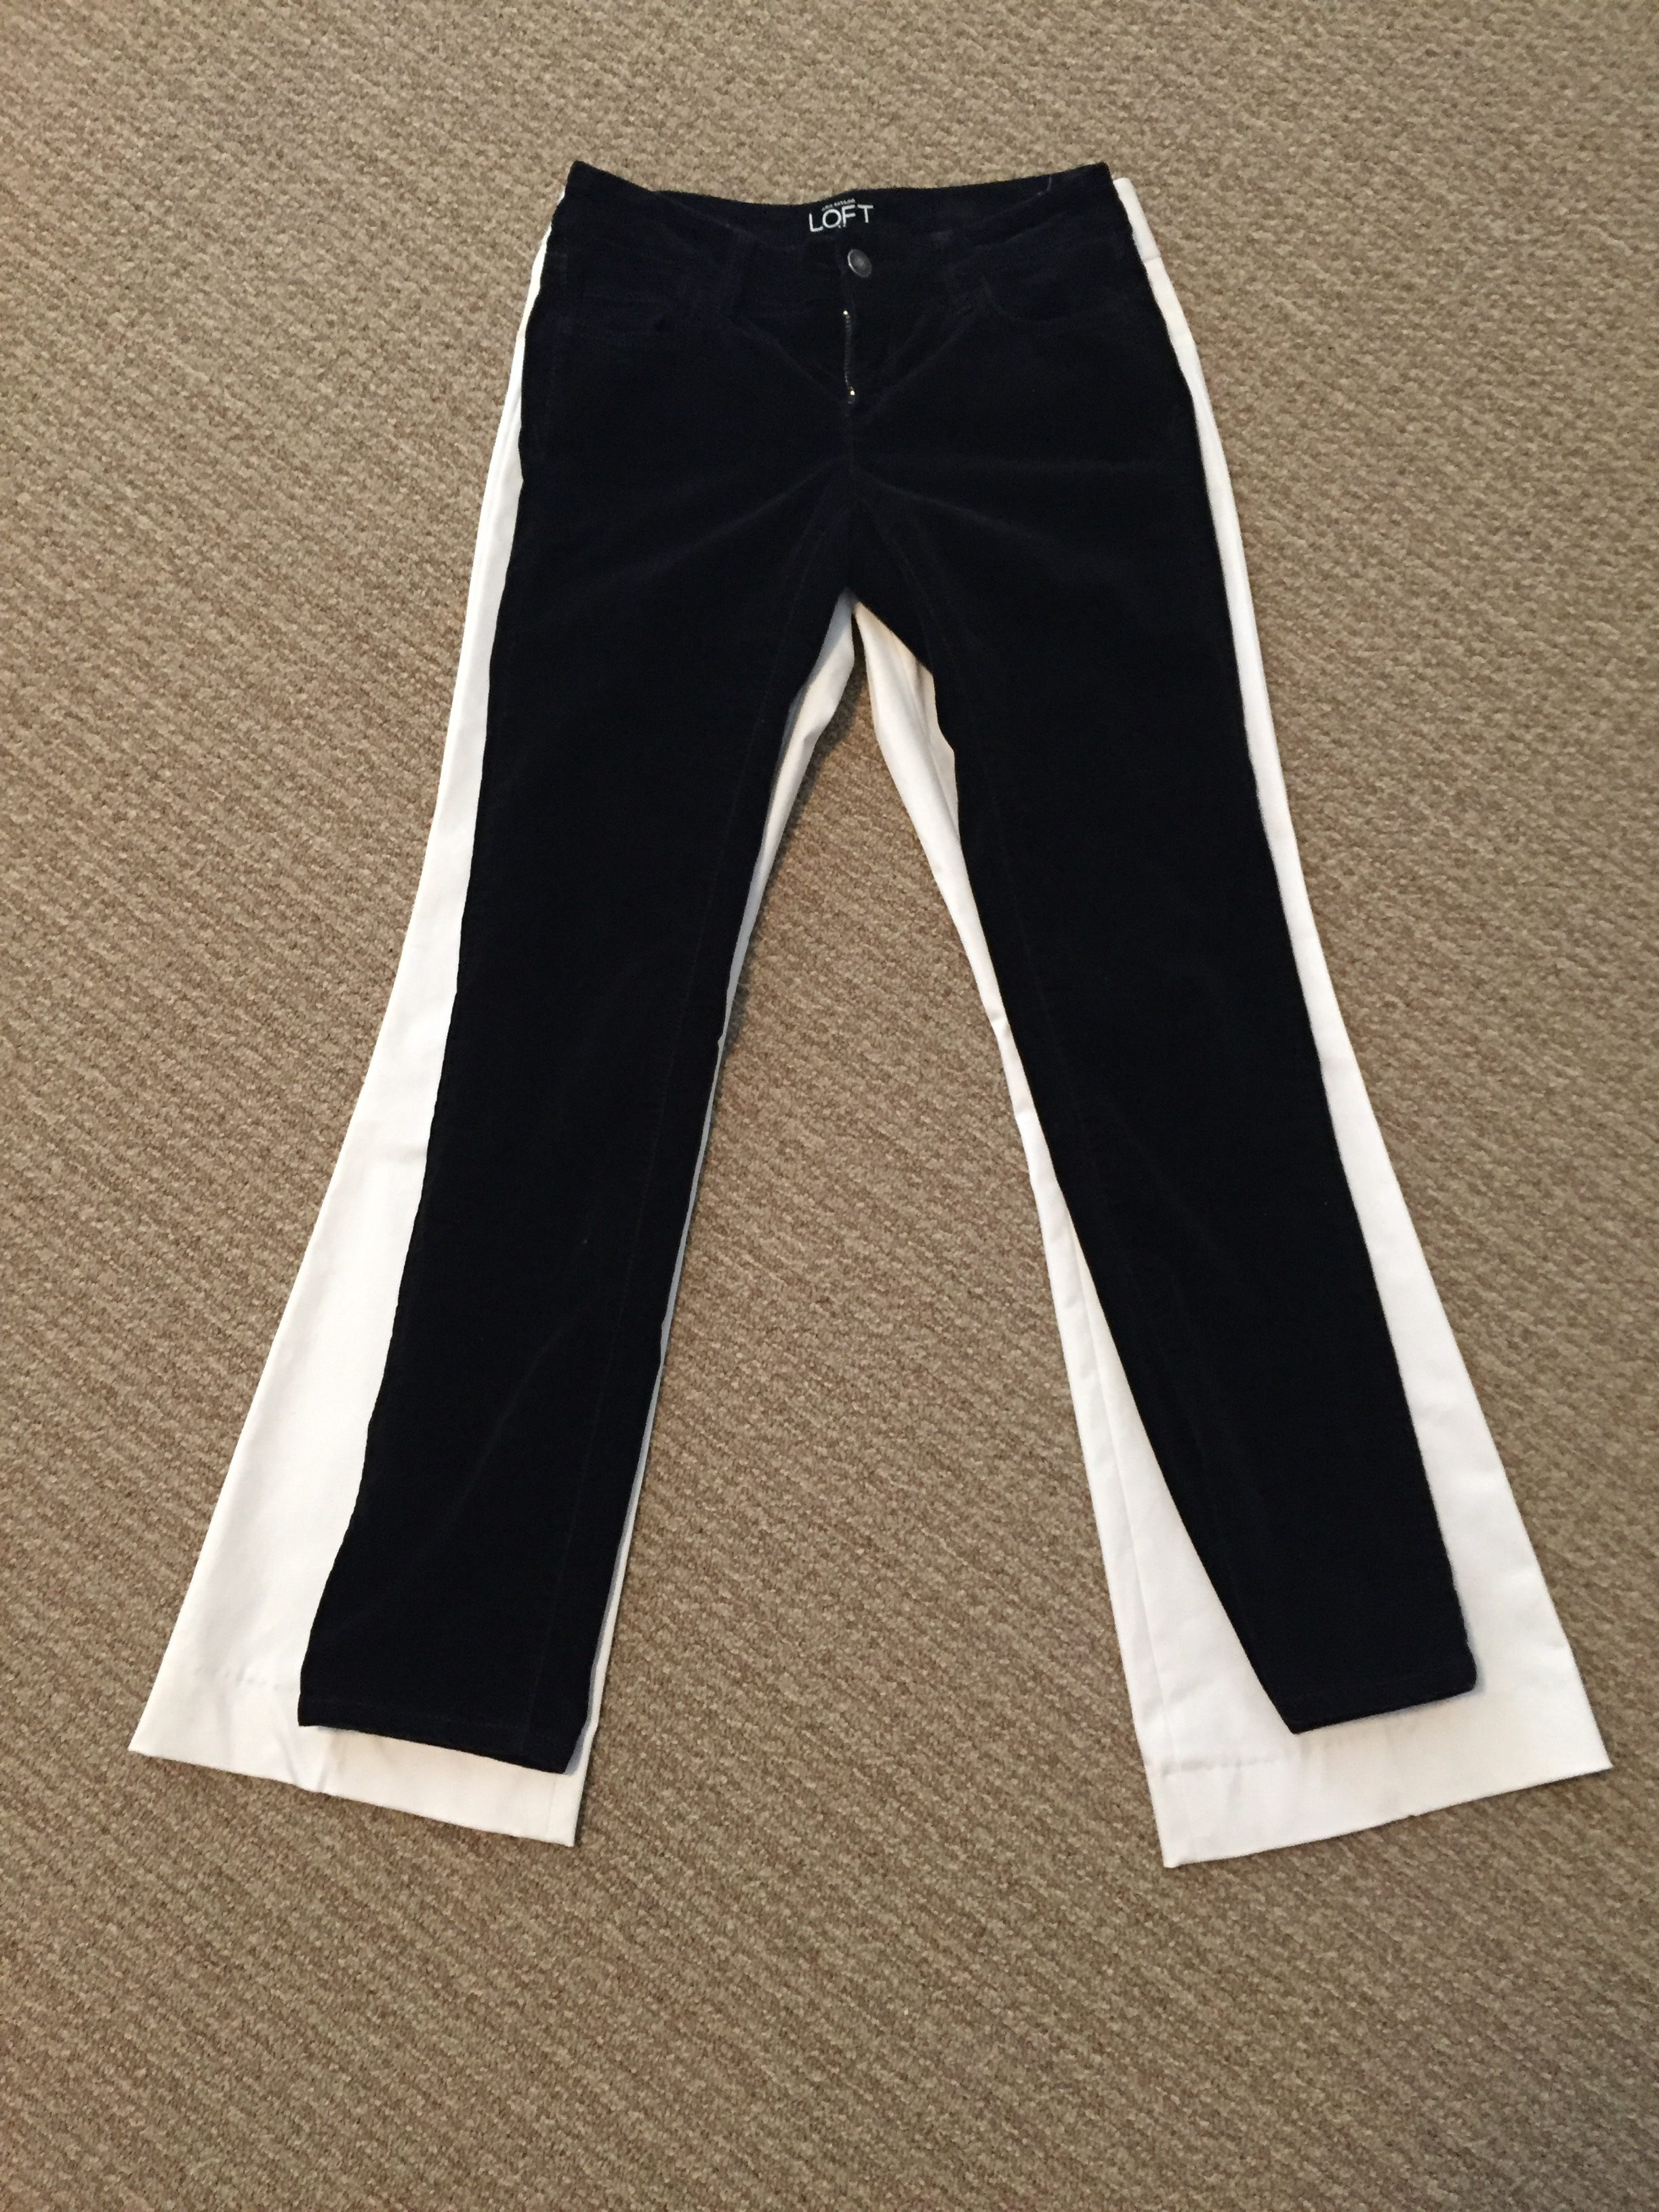 tailor your own pants